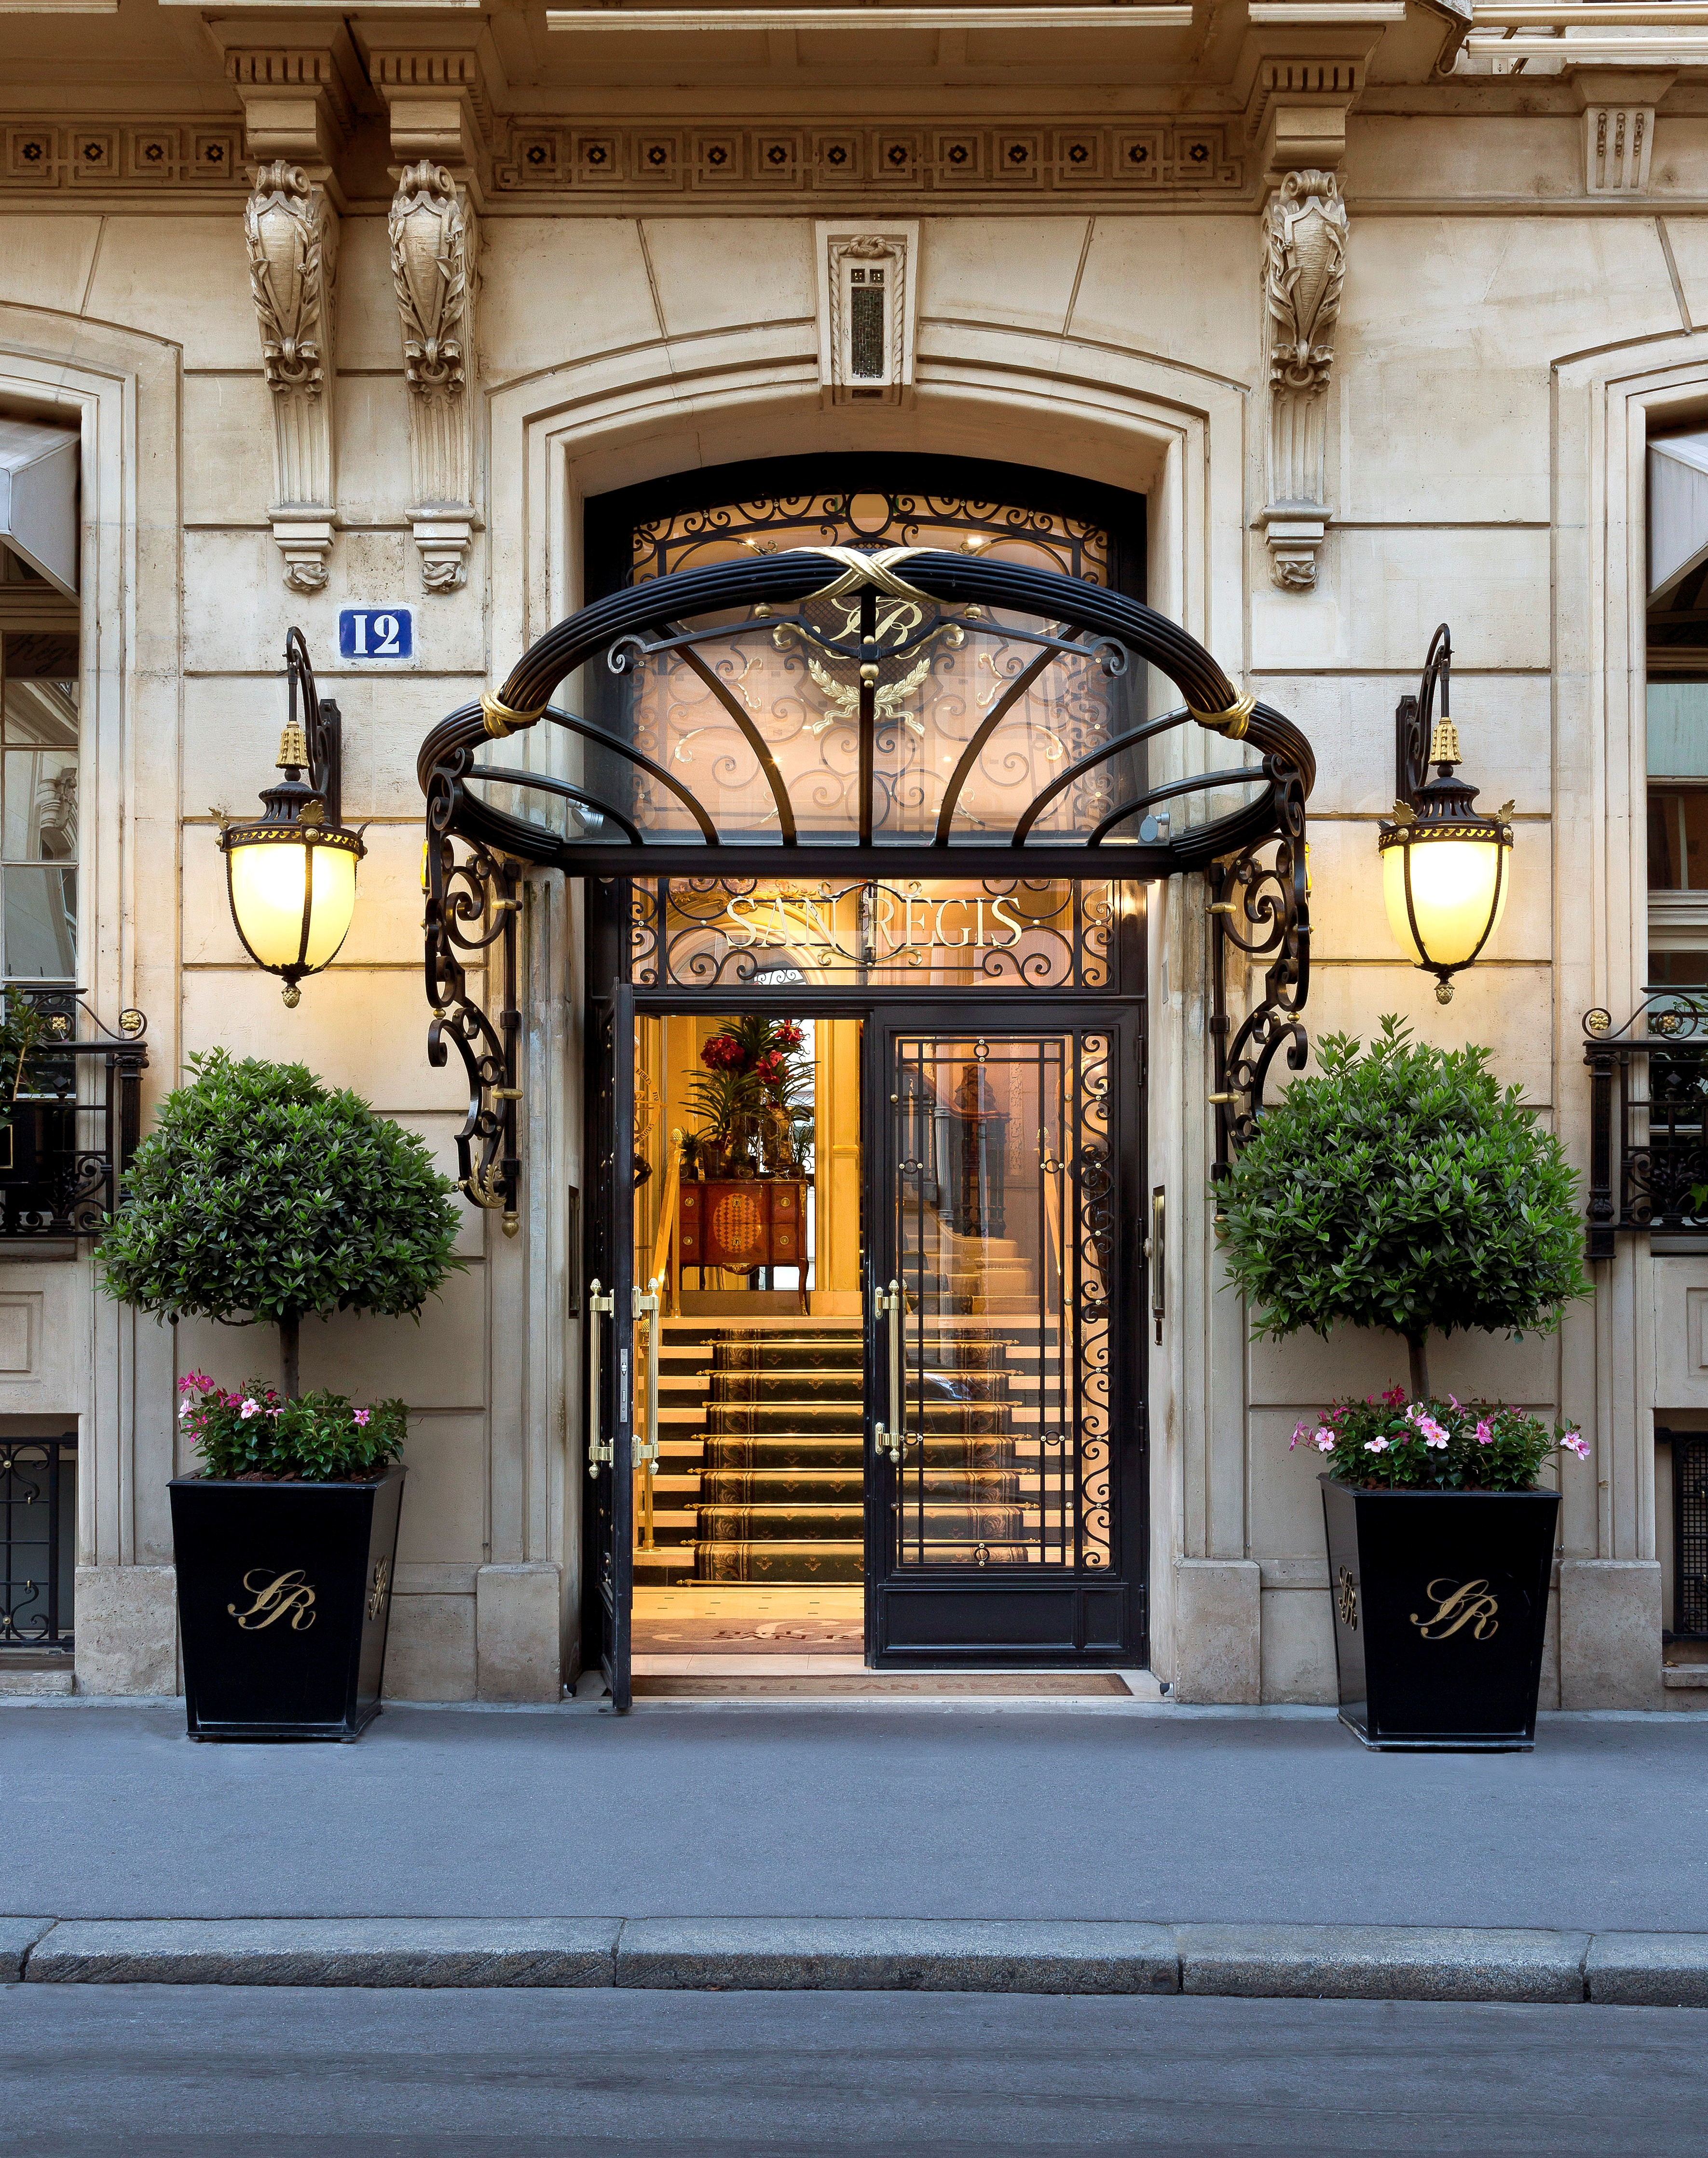 The hotel san r gis paris france luxecoliving 39 s best for Luxury hotels paris france